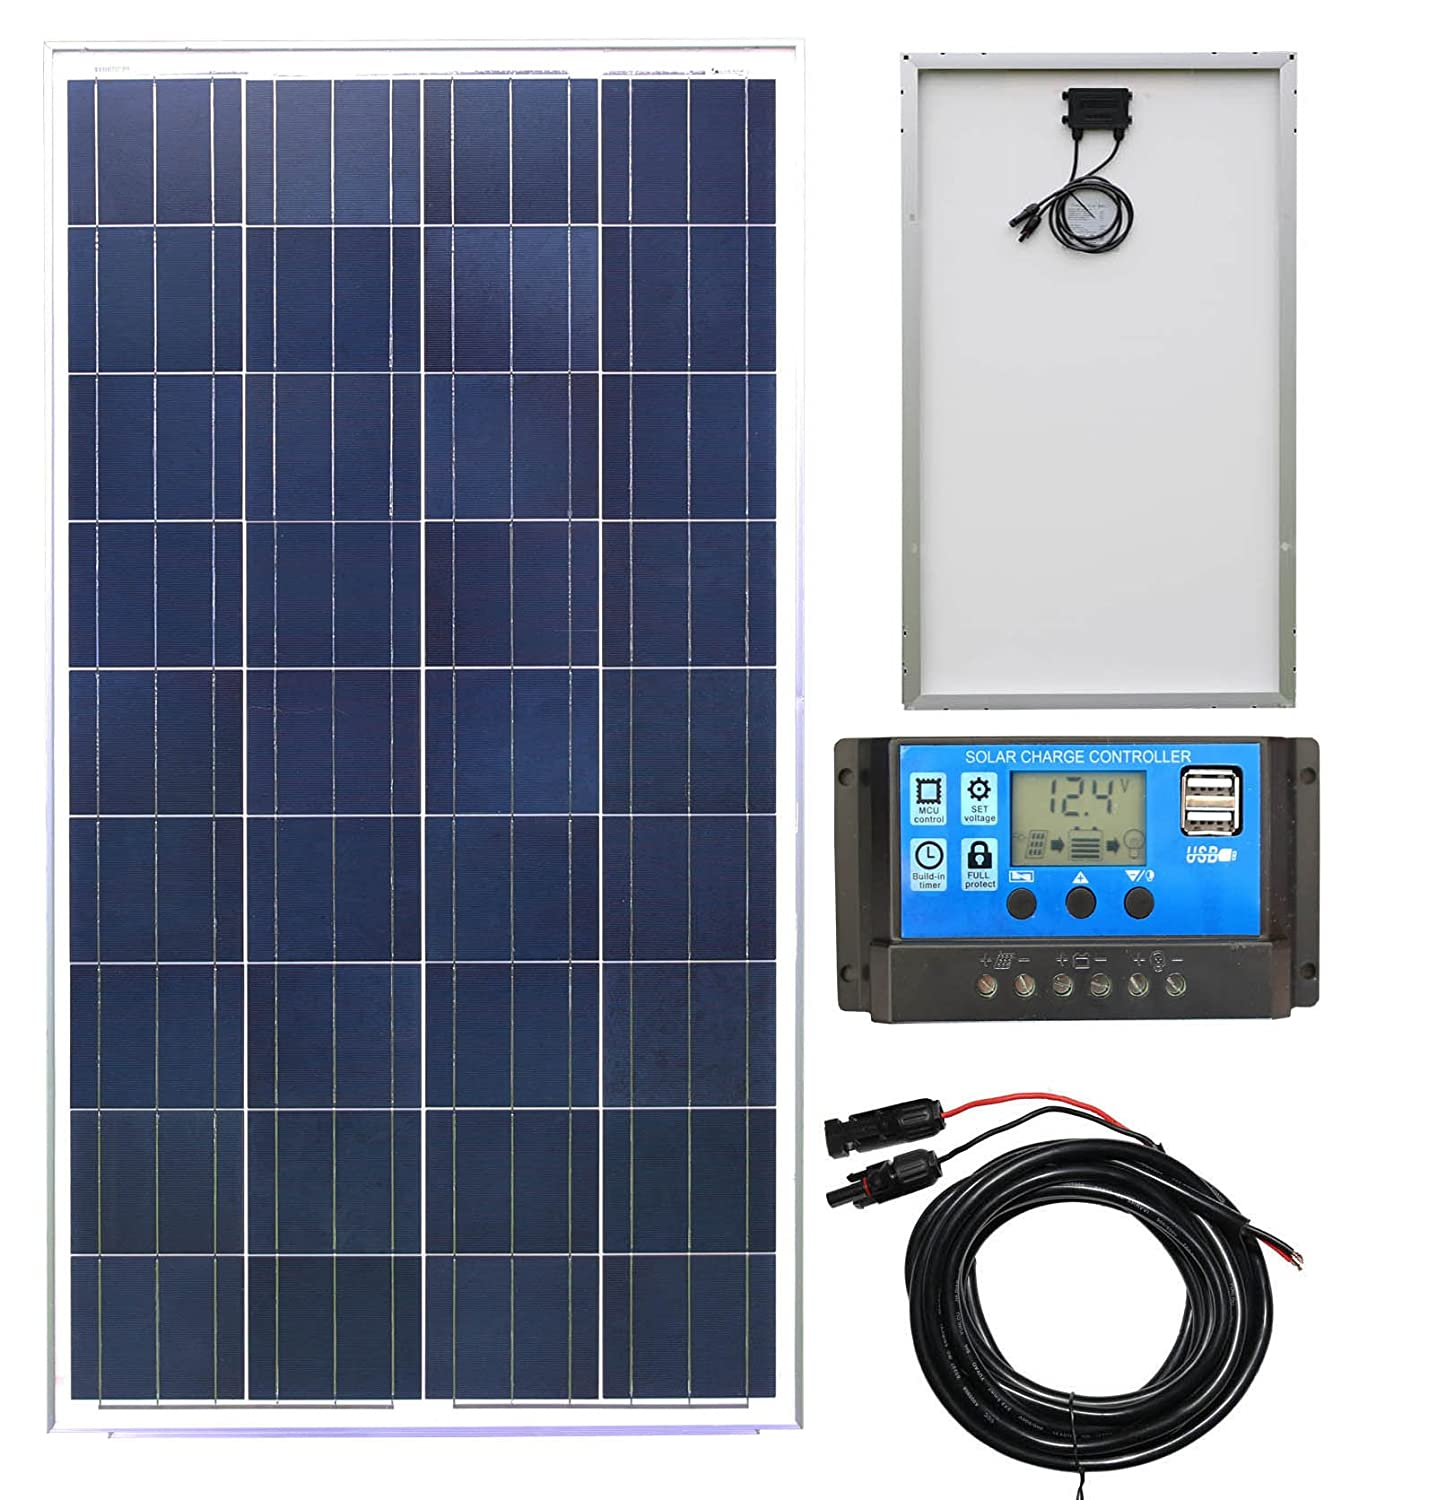 30W Poly-Crystalline Solar Panel Battery Charging Kit with Charger K1. For Caravans, Motorhomes, Boats & Any Flat Surface Lowenergie